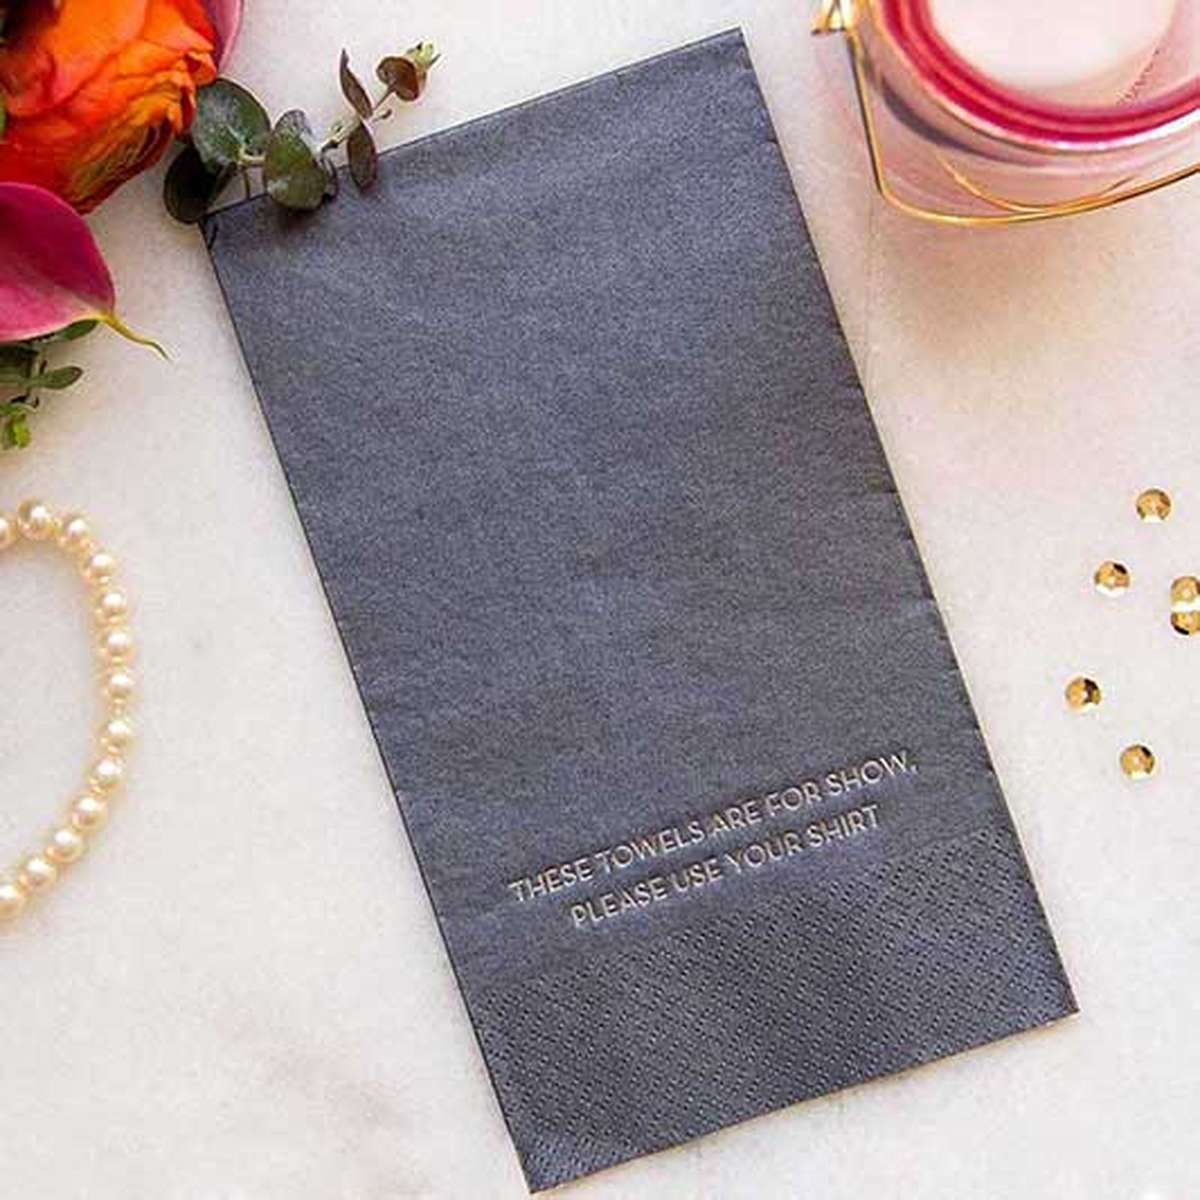 shimmer guest towel wedding napkin